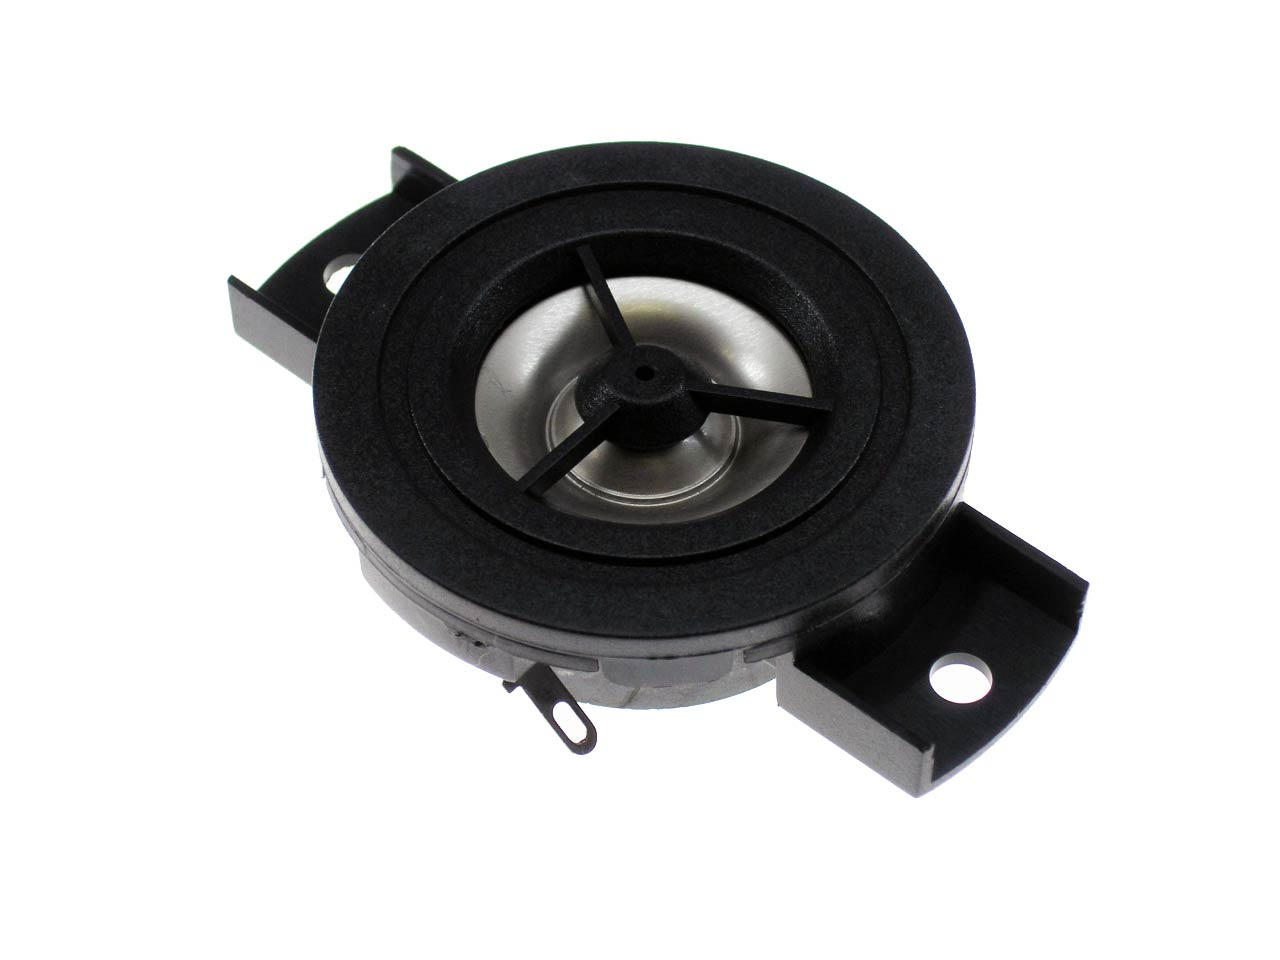 JBL Factory Replacement Tweeter, 8 Ohms, Control 23, 123-00000-00